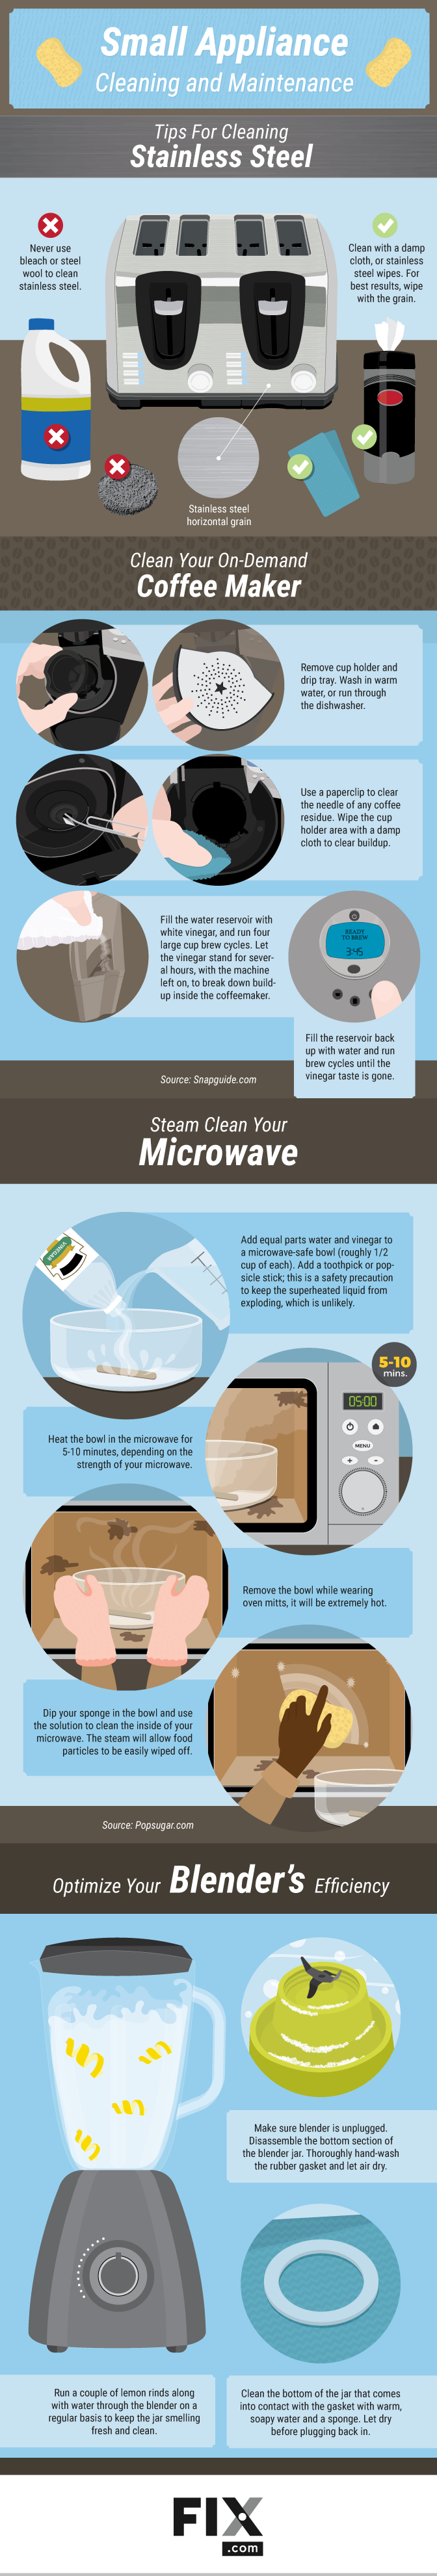 How to Clean Your Countertop Appliances #infographic